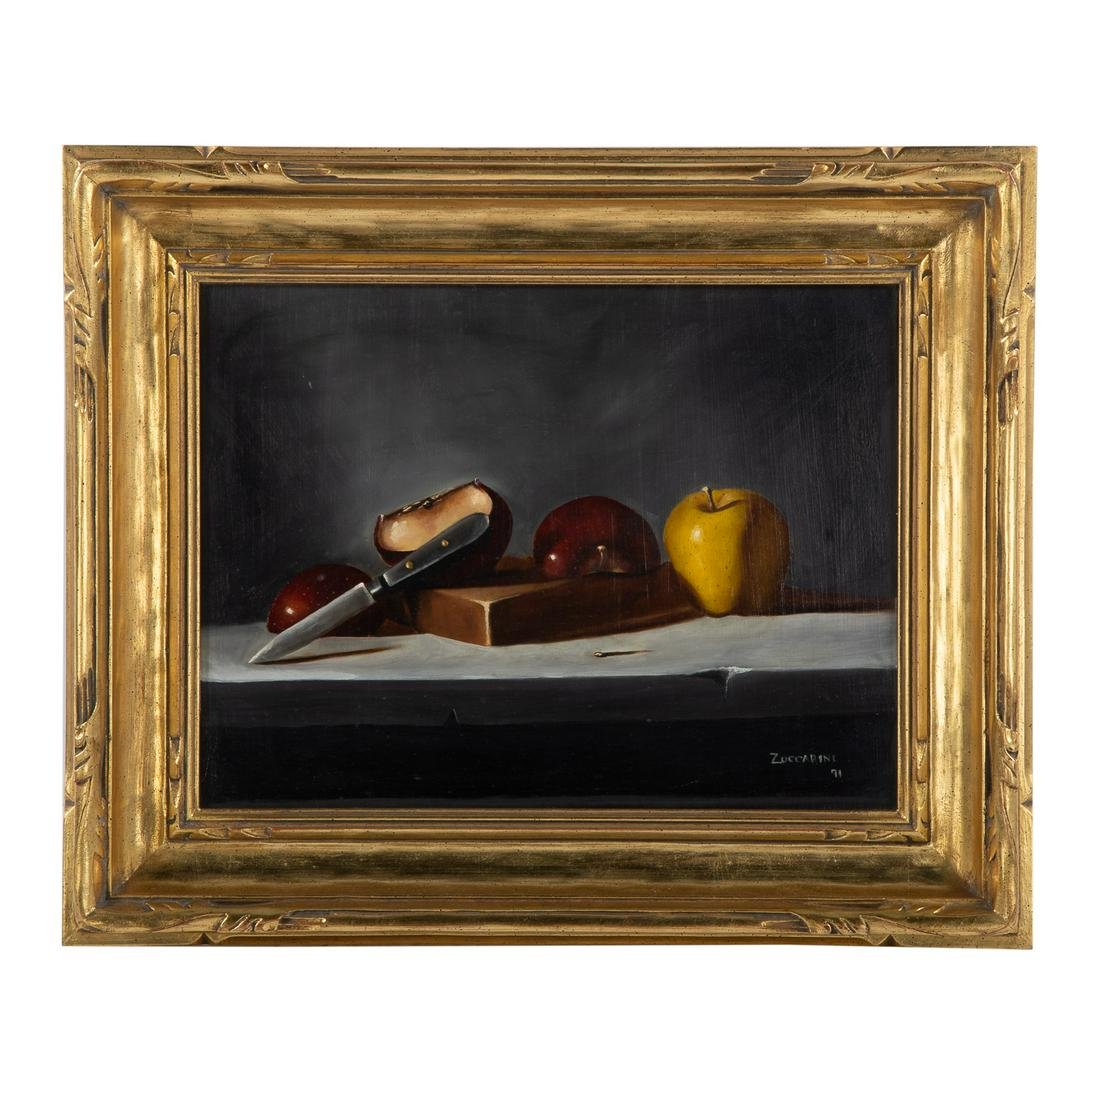 David Zuccarini. Still Life With Apples